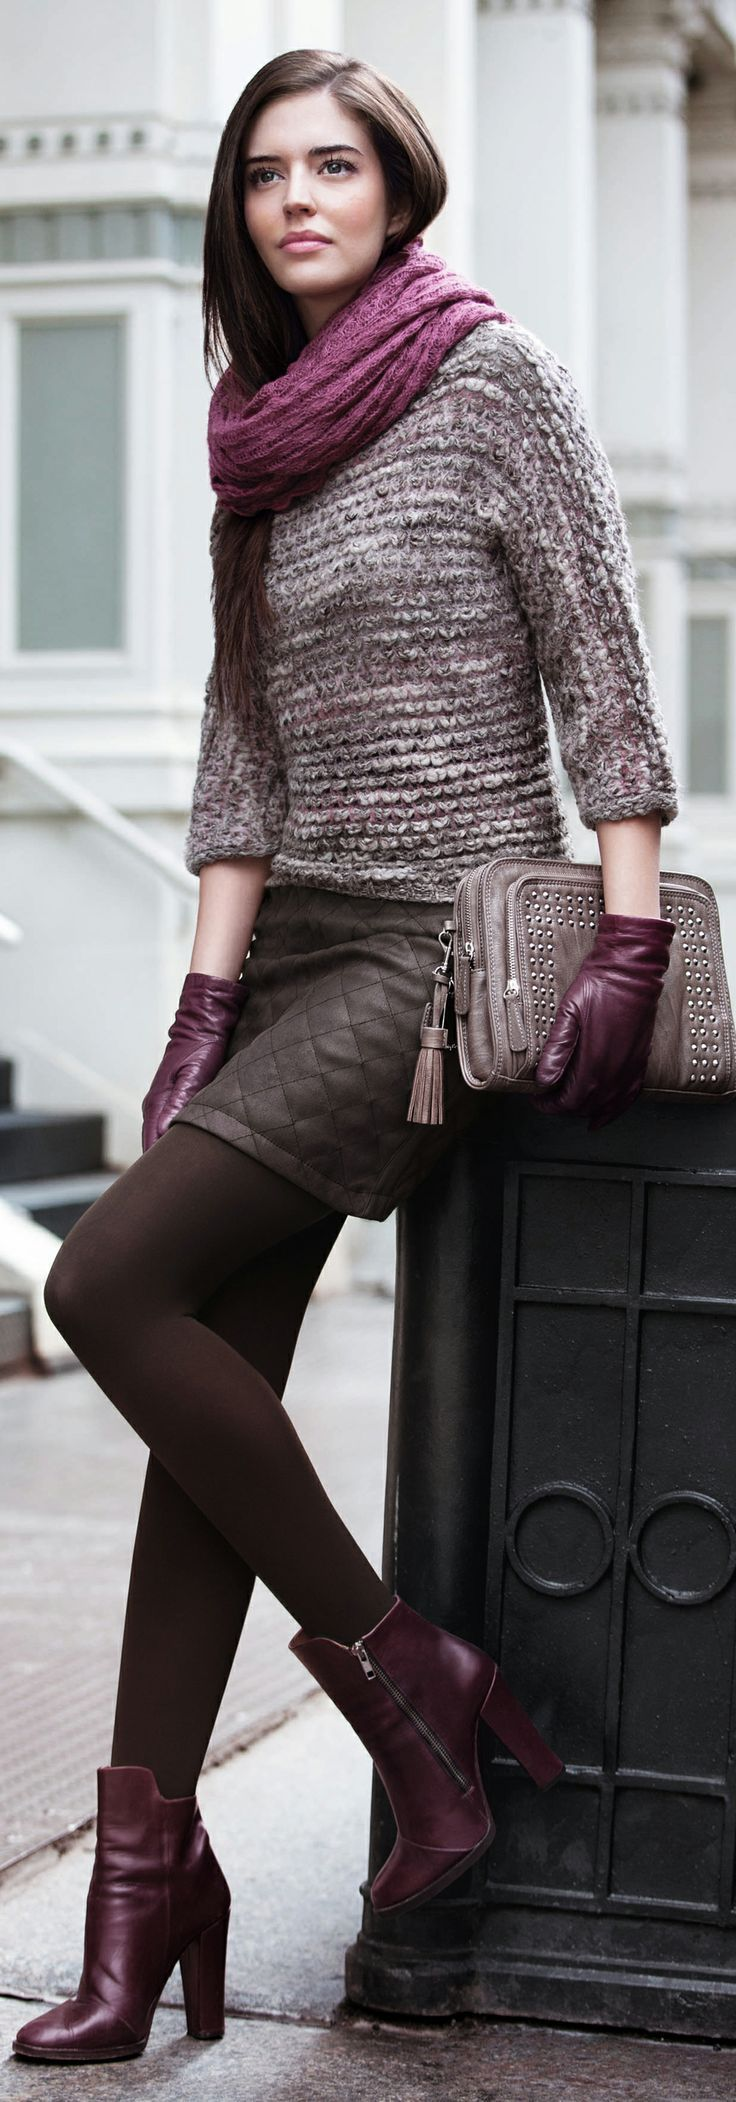 Winter outfit: brown-melange sweater, quilted brown skirt, burgundy scarf & booties, taupe studded clutch